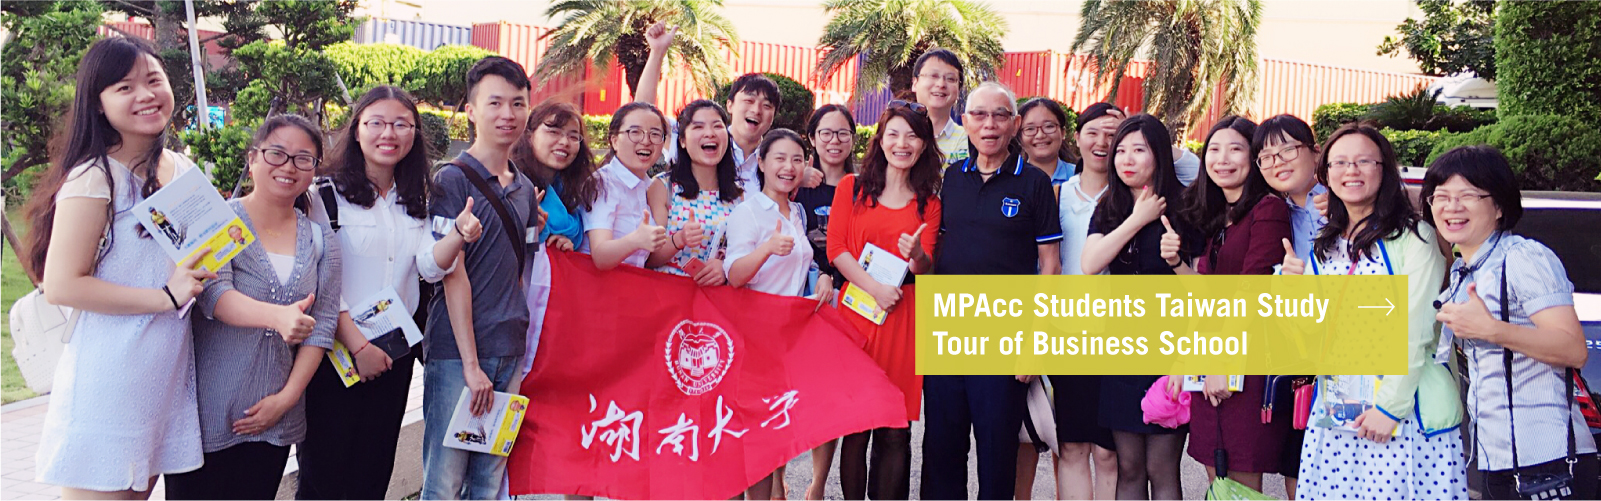 MPAcc Students Taiwan Study Tour of Business School